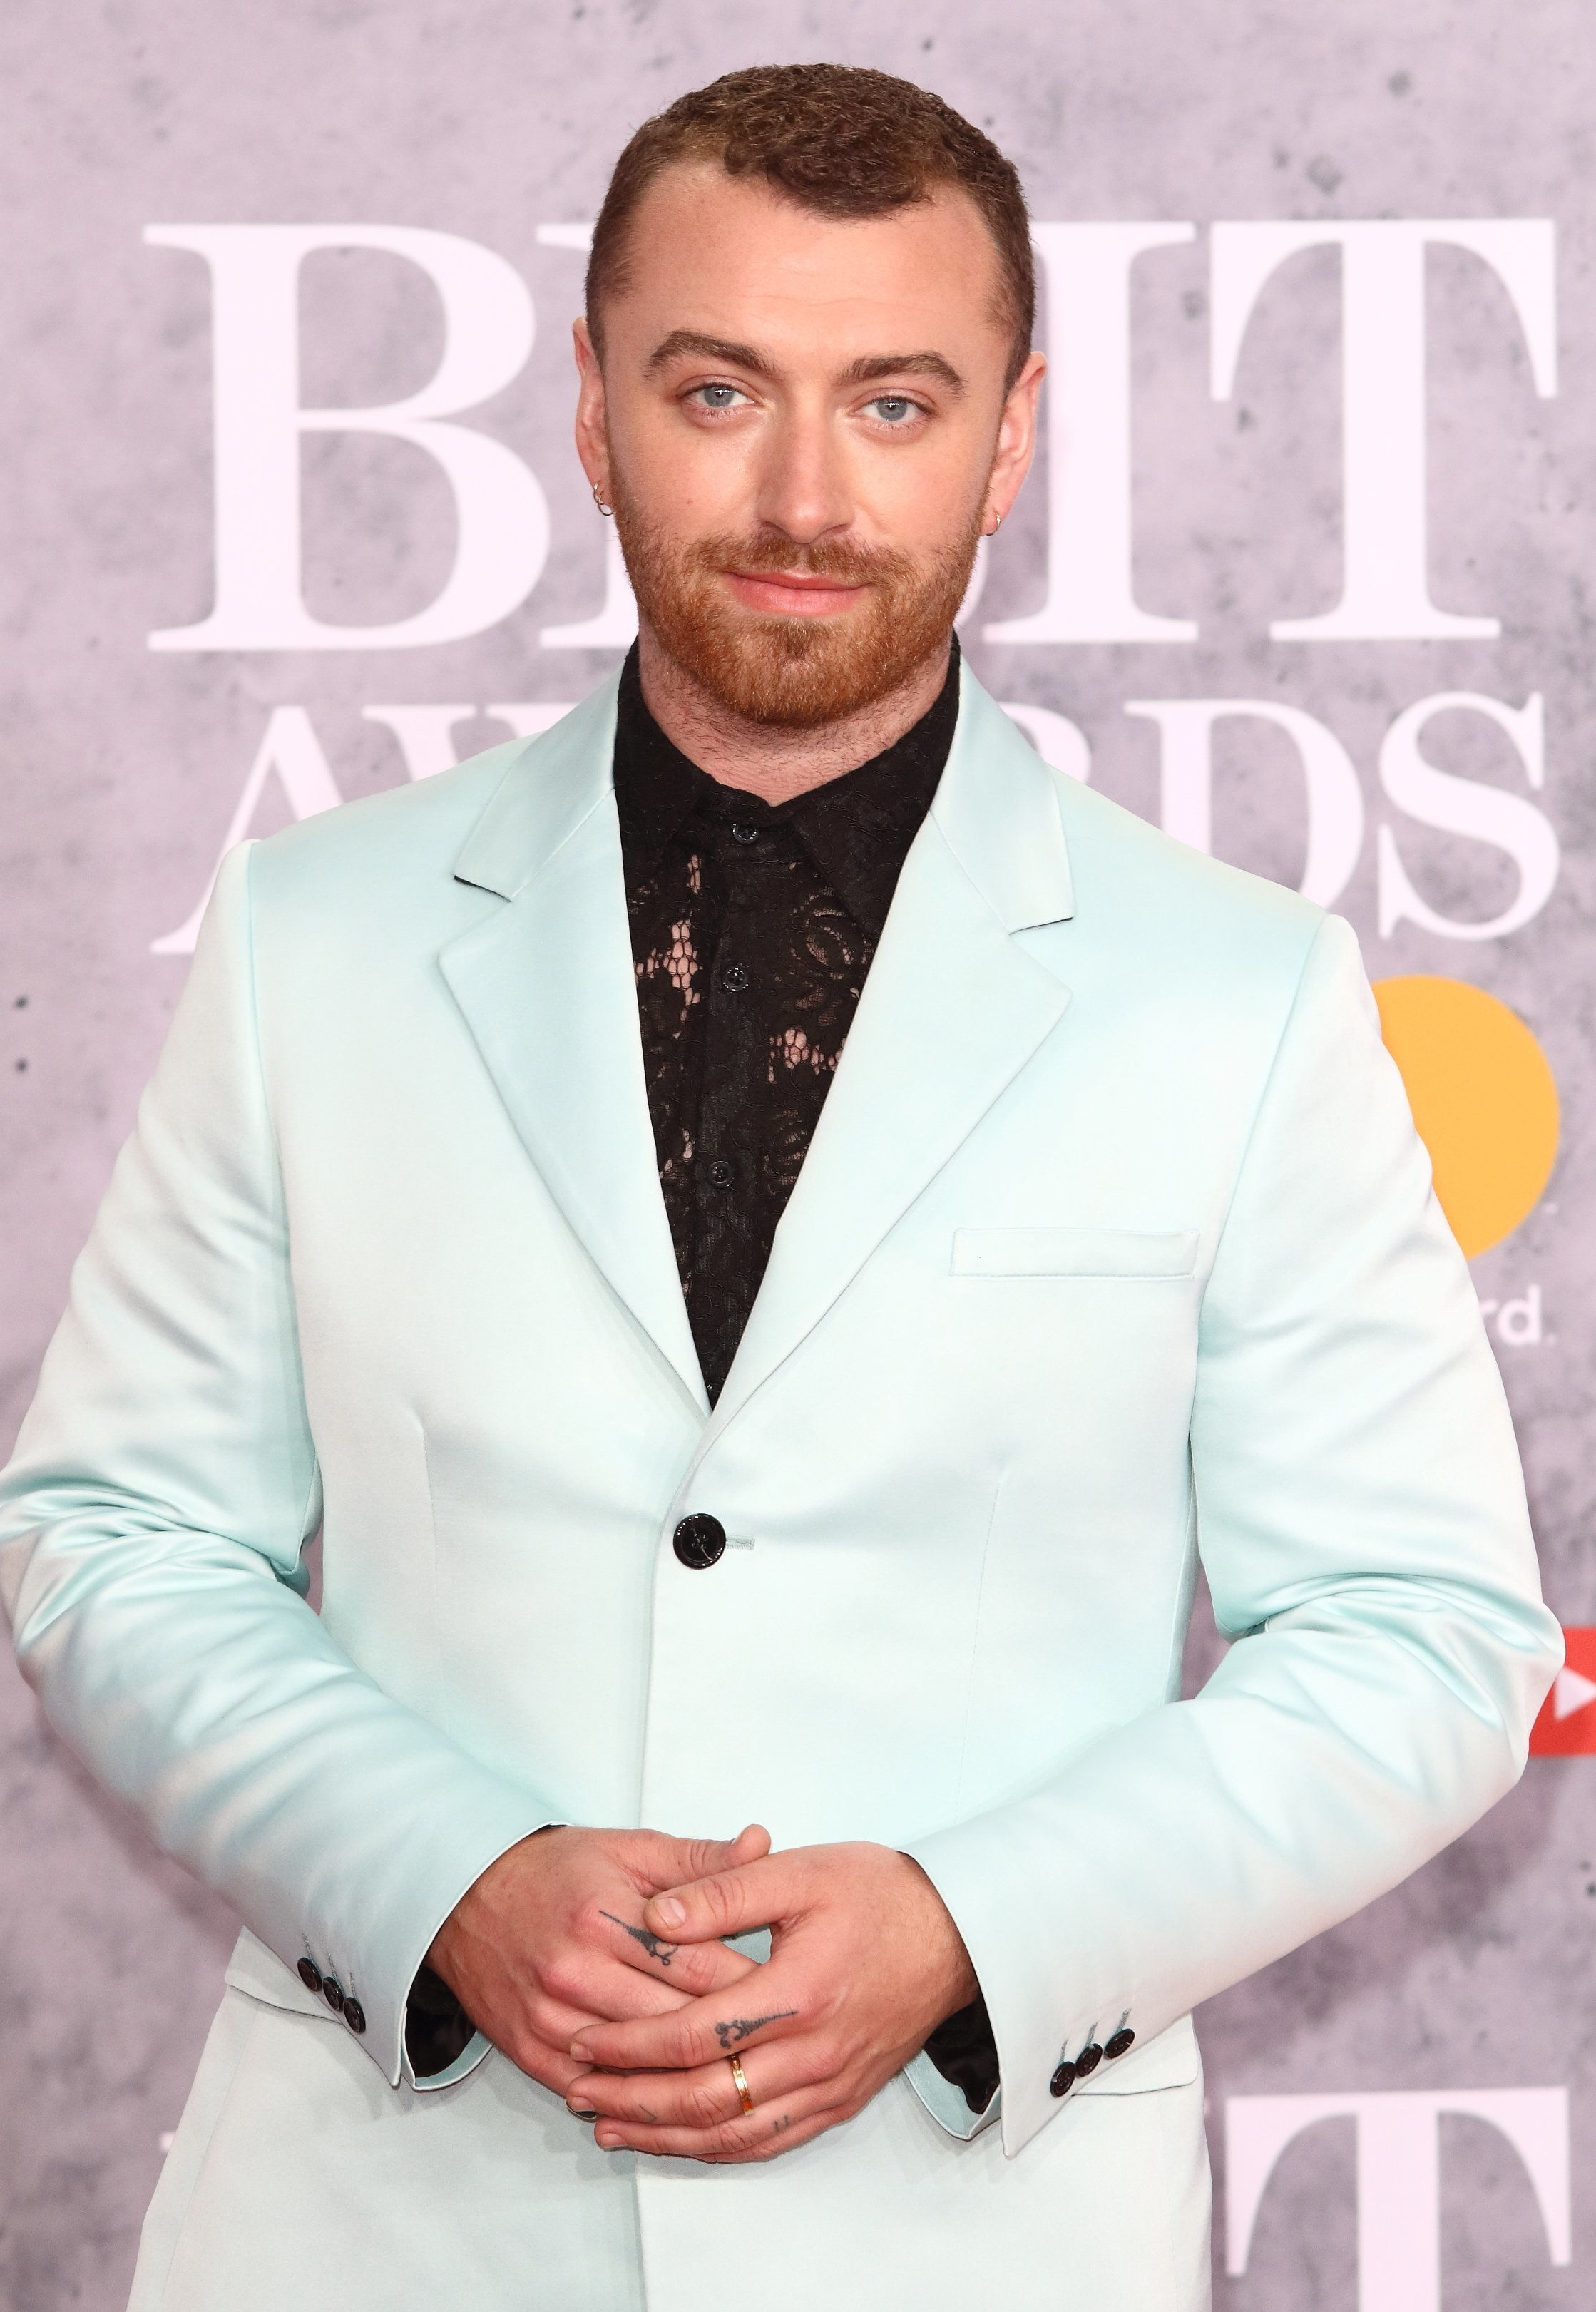 Sam Smith Opens Up About Gender Identity, Body Image In Candid